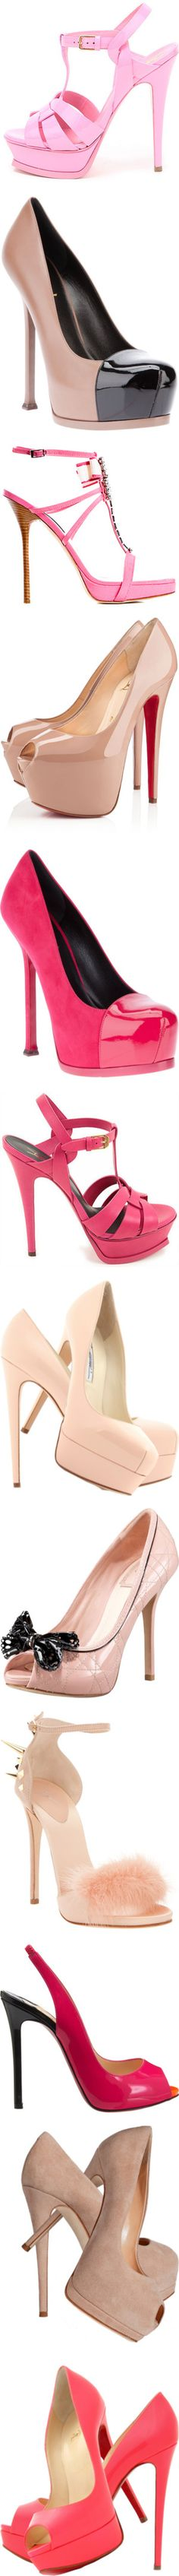 Pink heels ♥✤ | Keep the Glamour | BeStayBeautiful